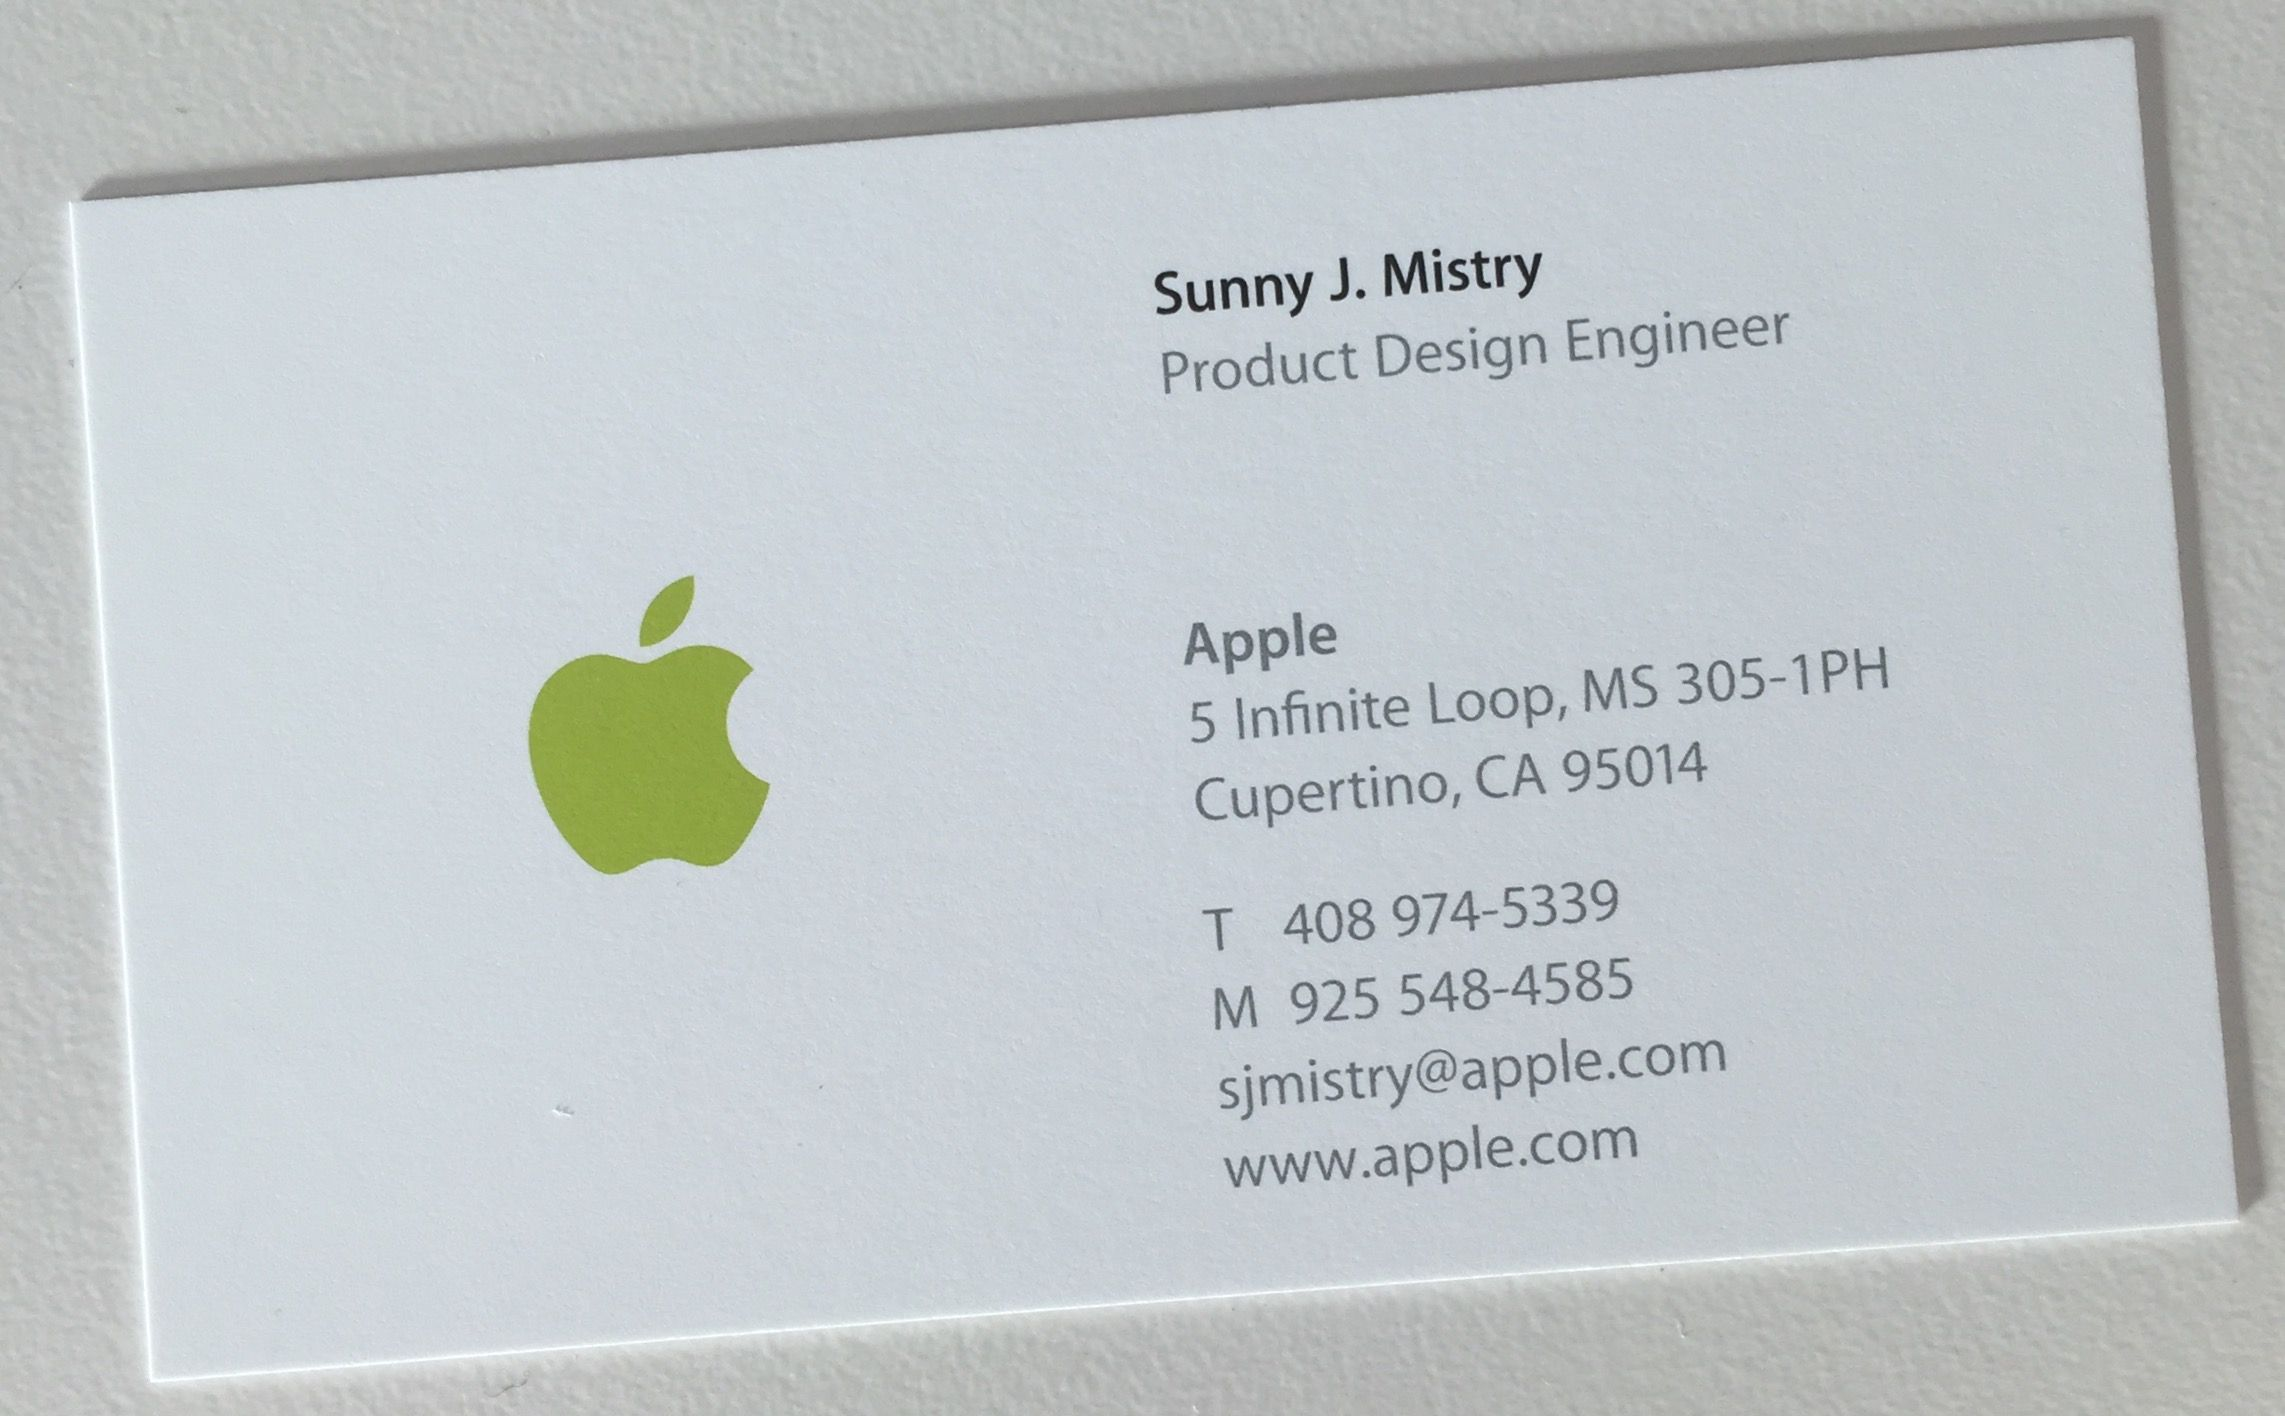 Apple Business Card | Business Cards | Pinterest | Business cards